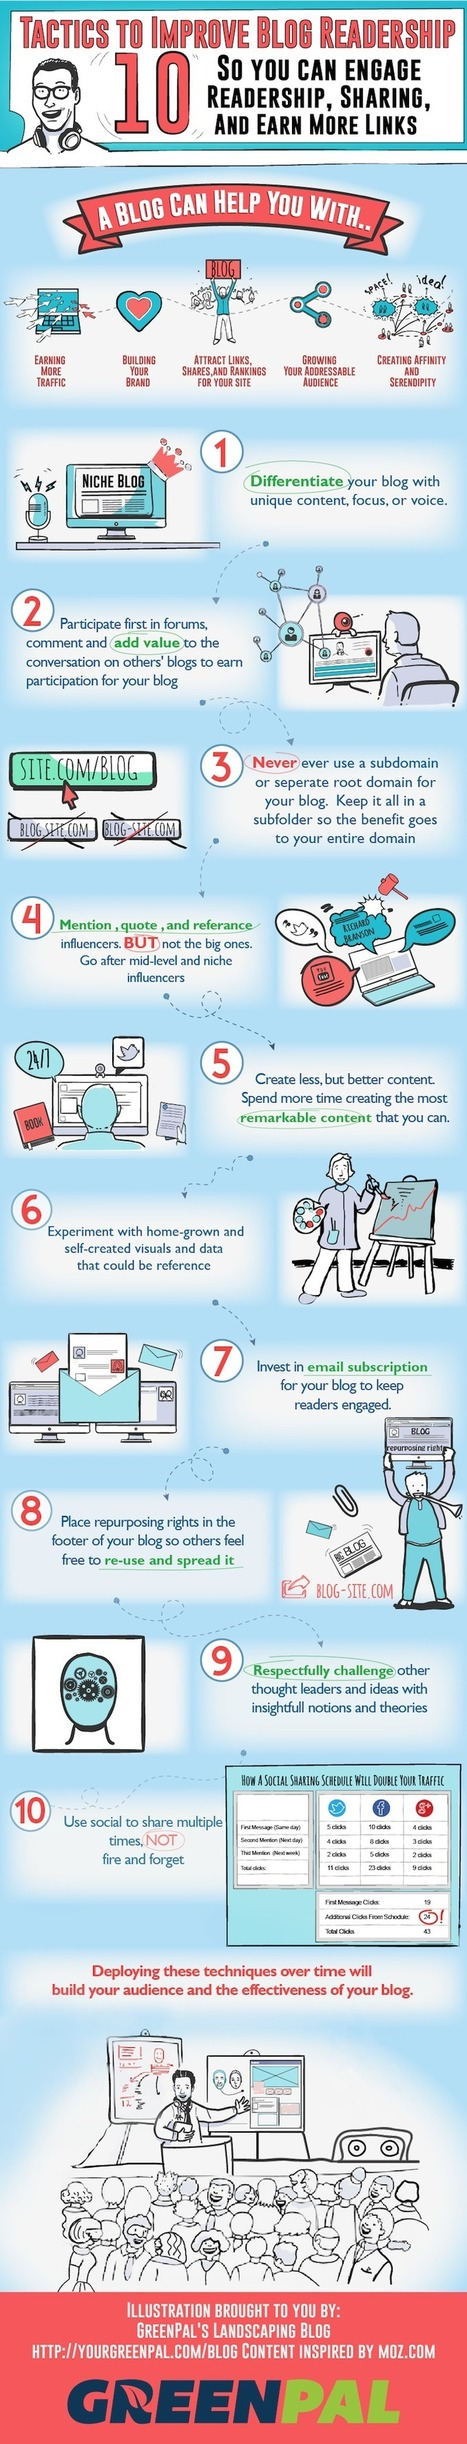 10 Crafty Ways To Improve Your Blog Readership [Infographic] | Social Media Perspectives | Scoop.it